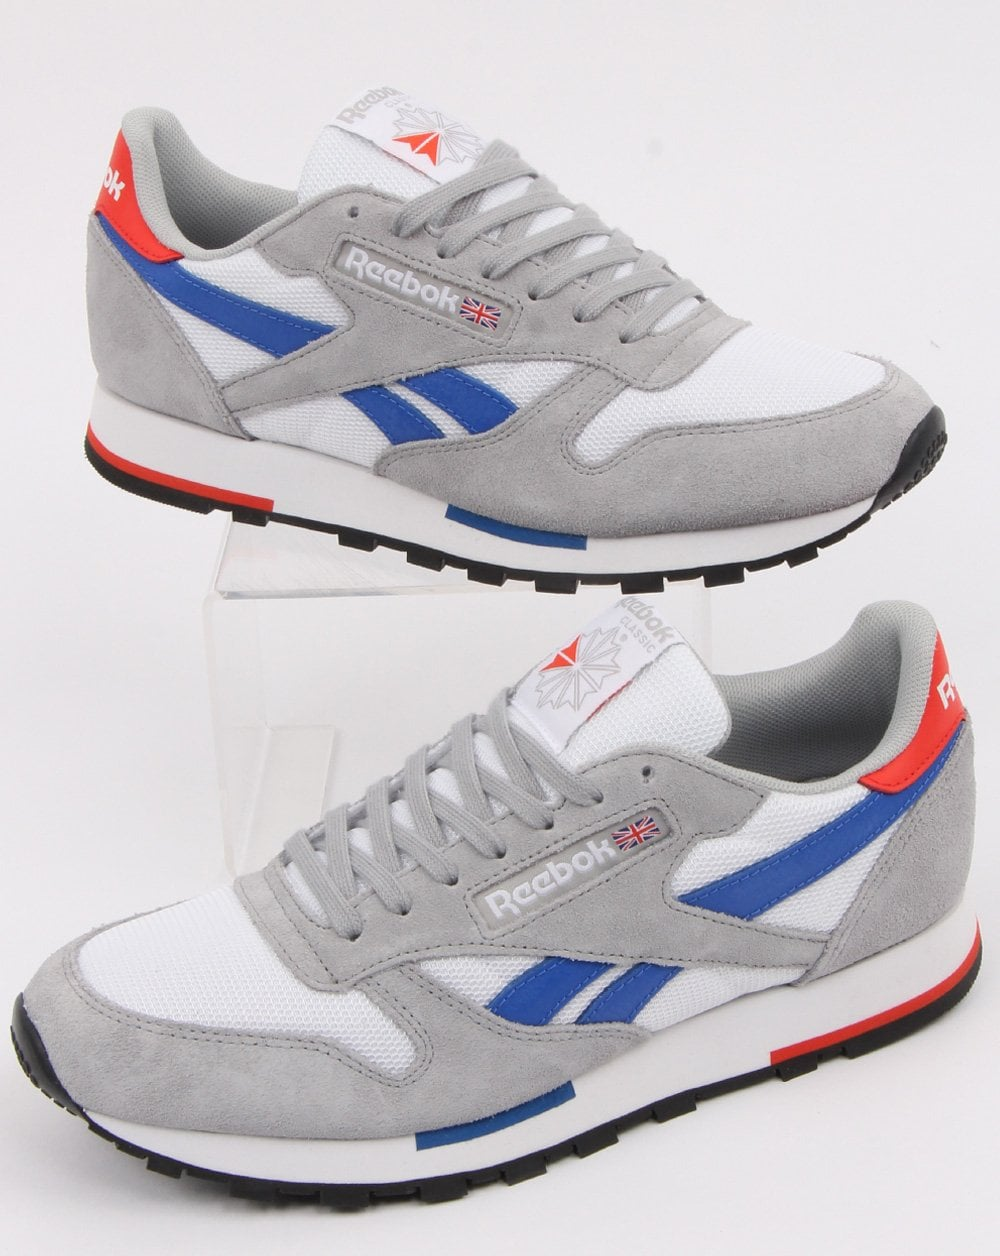 Reebok Classic Trainers White in Grey